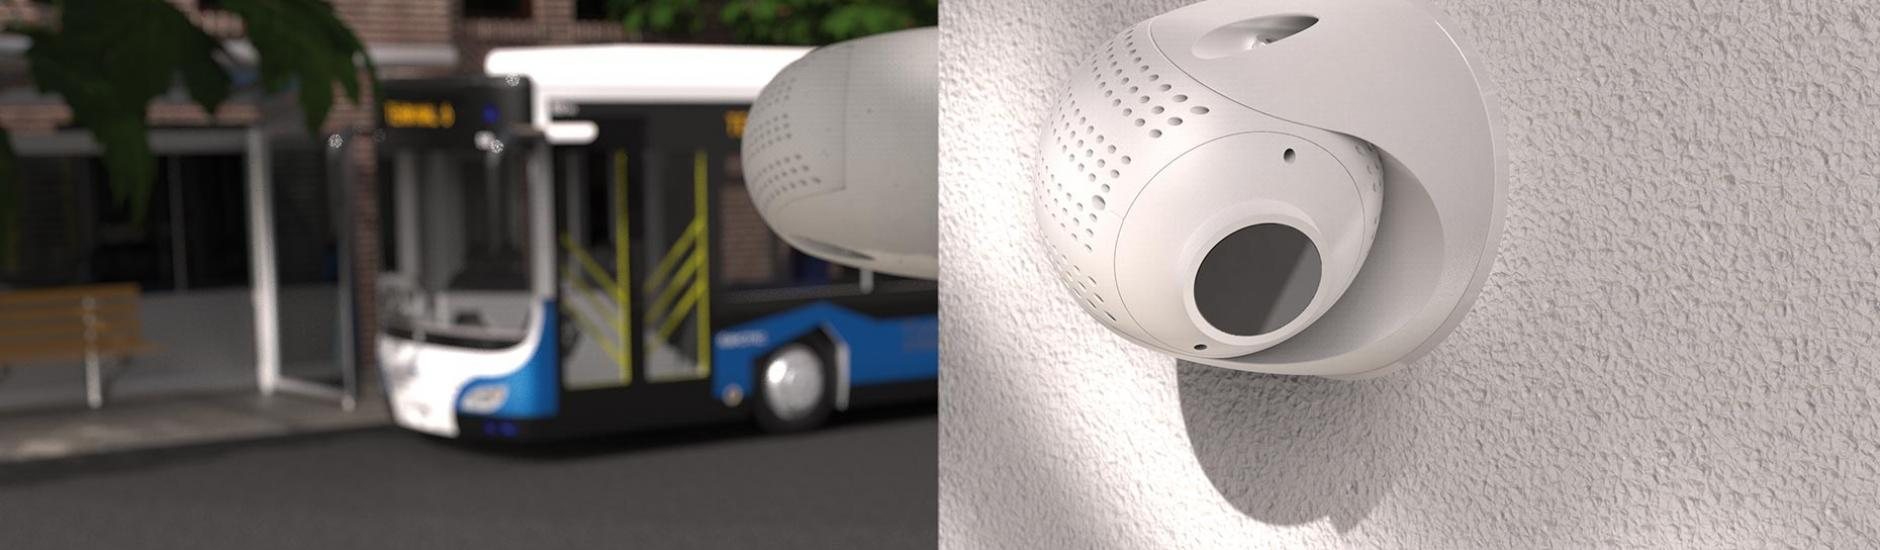 Mx6 cameras: Intelligent, powerful, flexible and ONVIF compliant